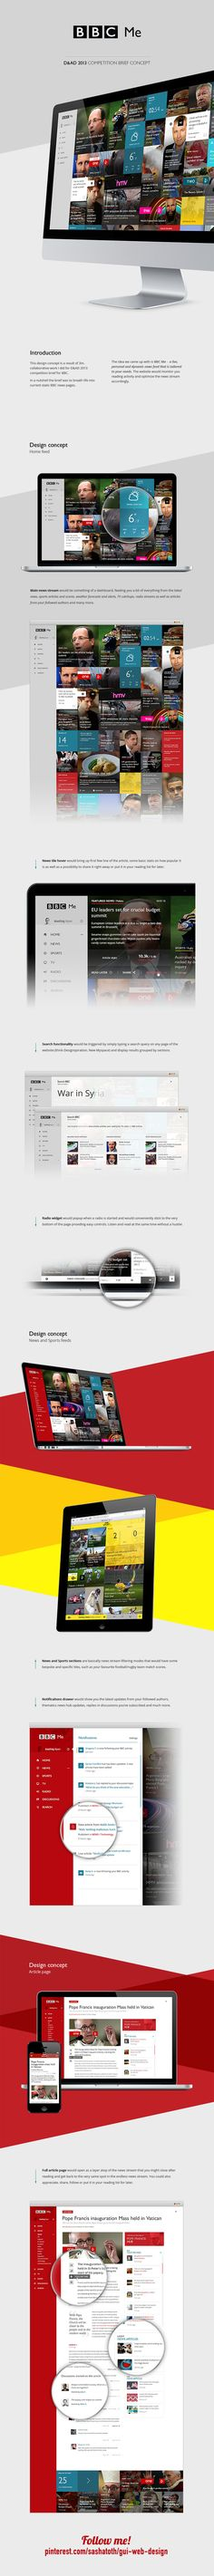 BBC Me concept / D 2013 by Dmitrij Paškevič, via Behance *** This is the result of a 3m. collaborative work on BBC student brief for D 2013.